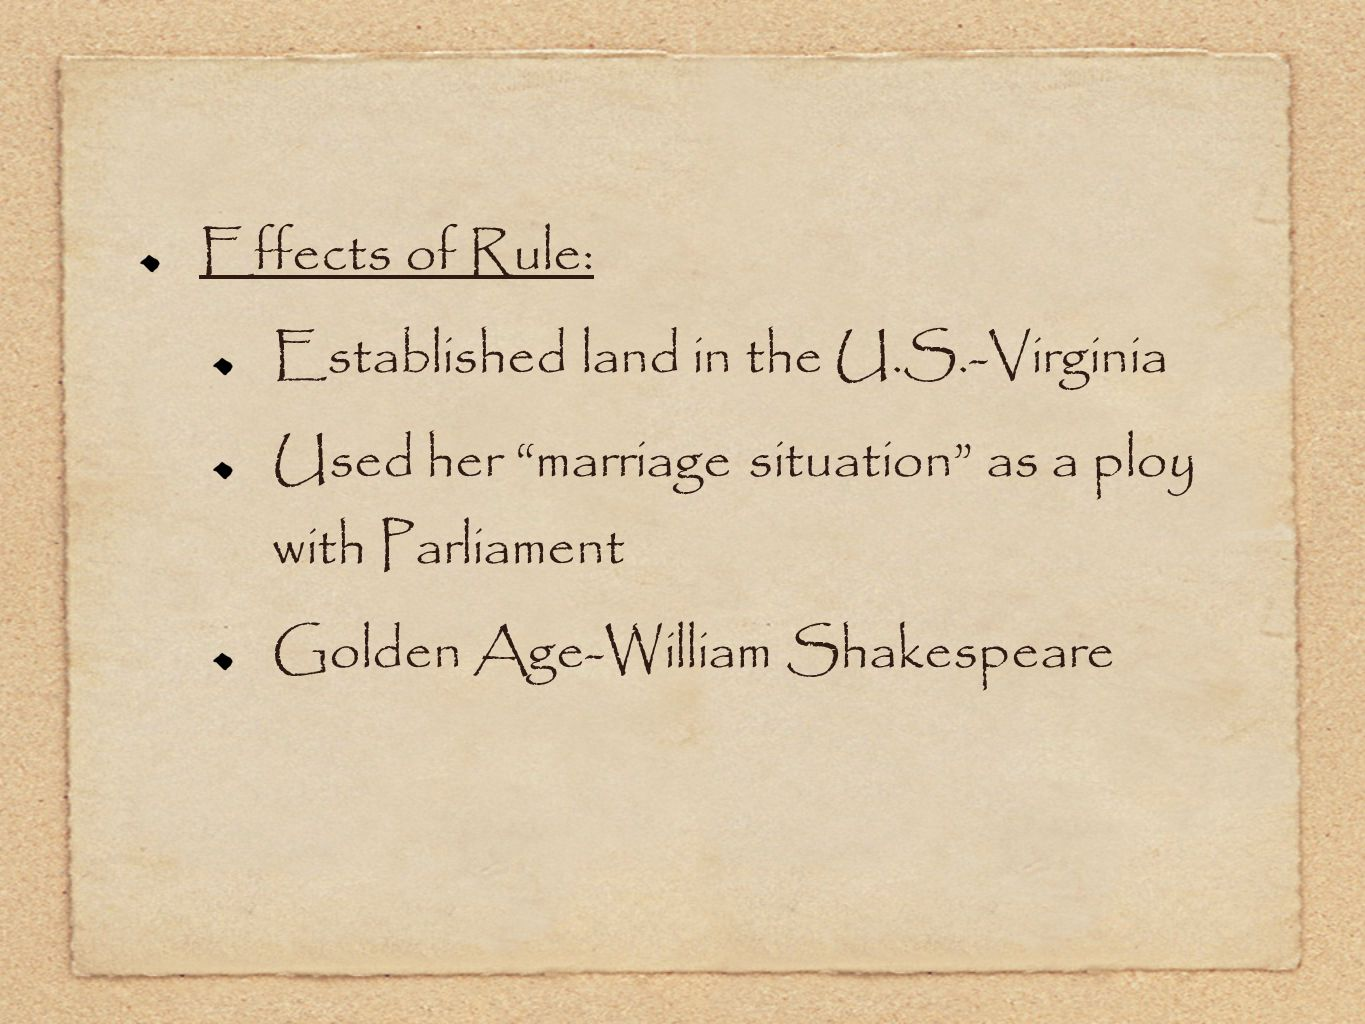 Effects of Rule: Established land in the U.S.-Virginia Used her marriage situation as a ploy with Parliament Golden Age-William Shakespeare